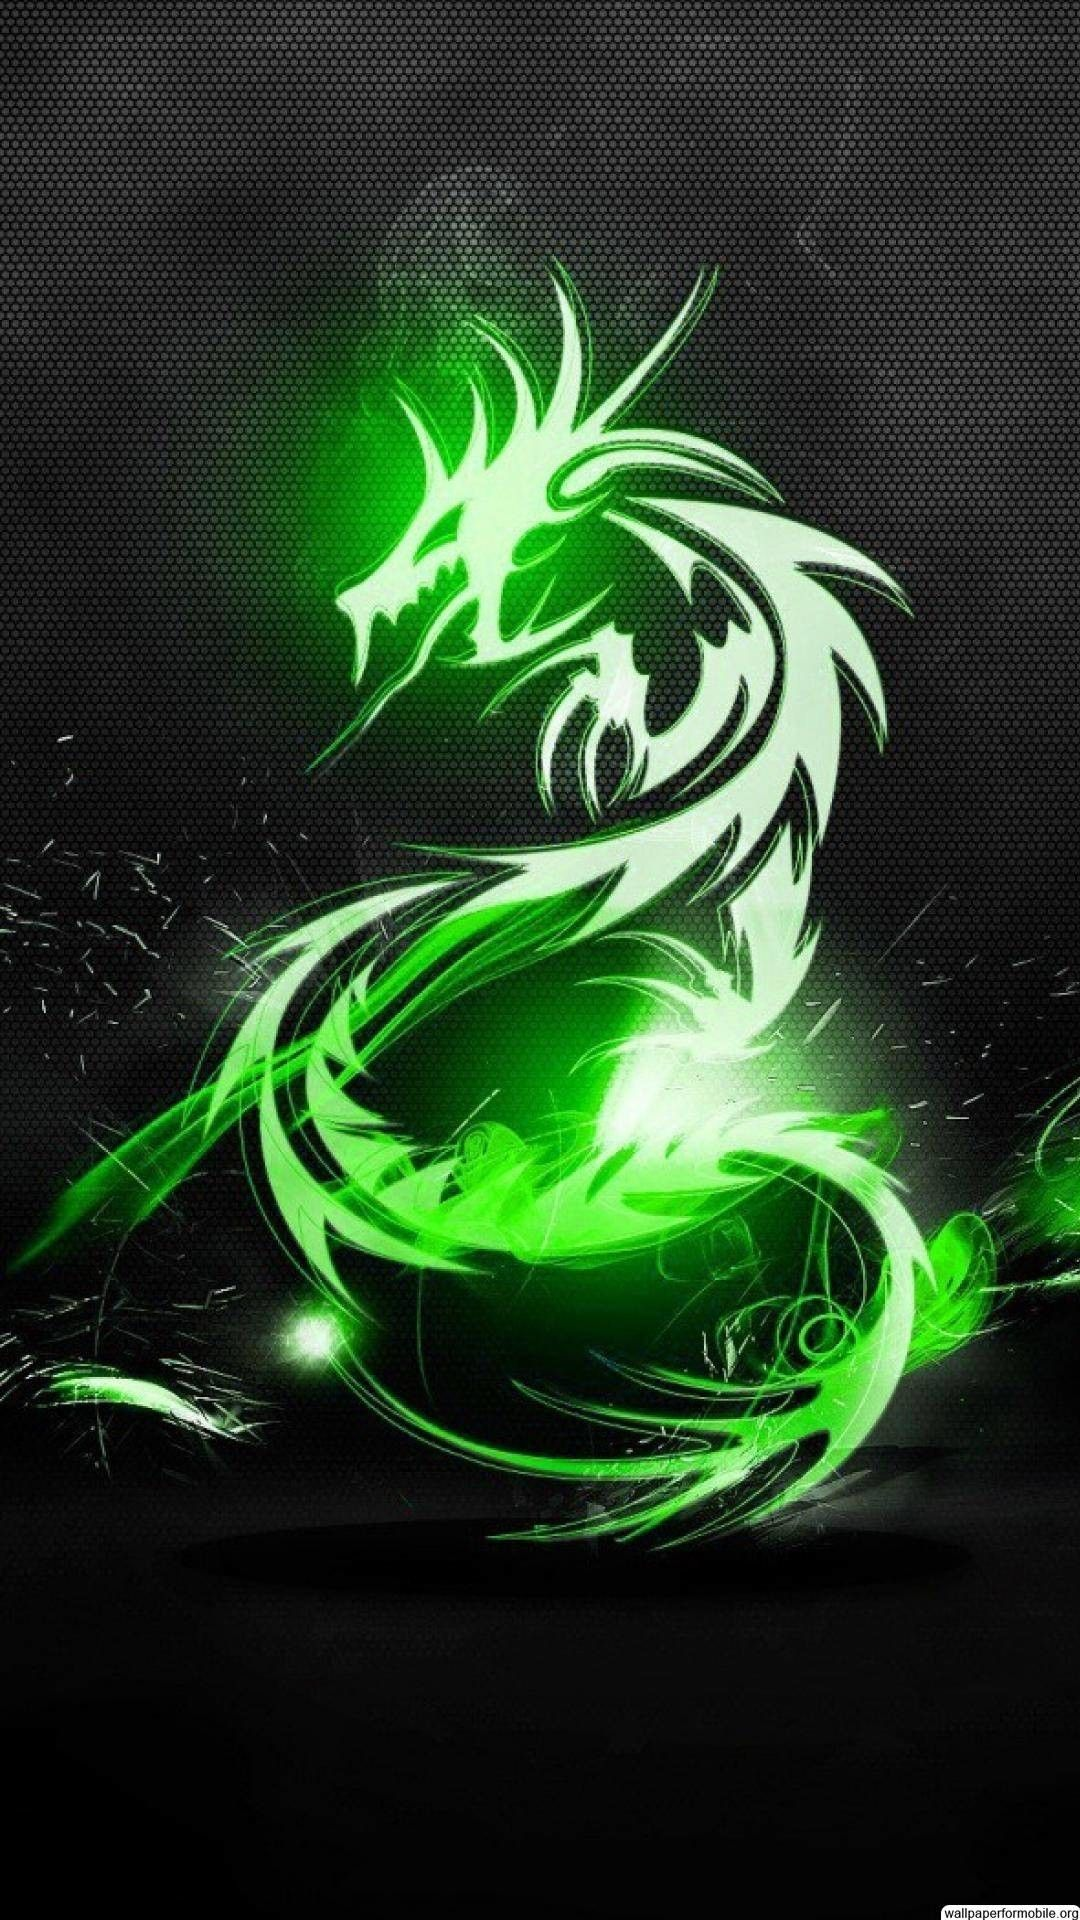 Lightning Dragon Hd Wallpaper Android In 2020 Dragon Wallpaper Iphone Dragon Pictures Dragon Artwork